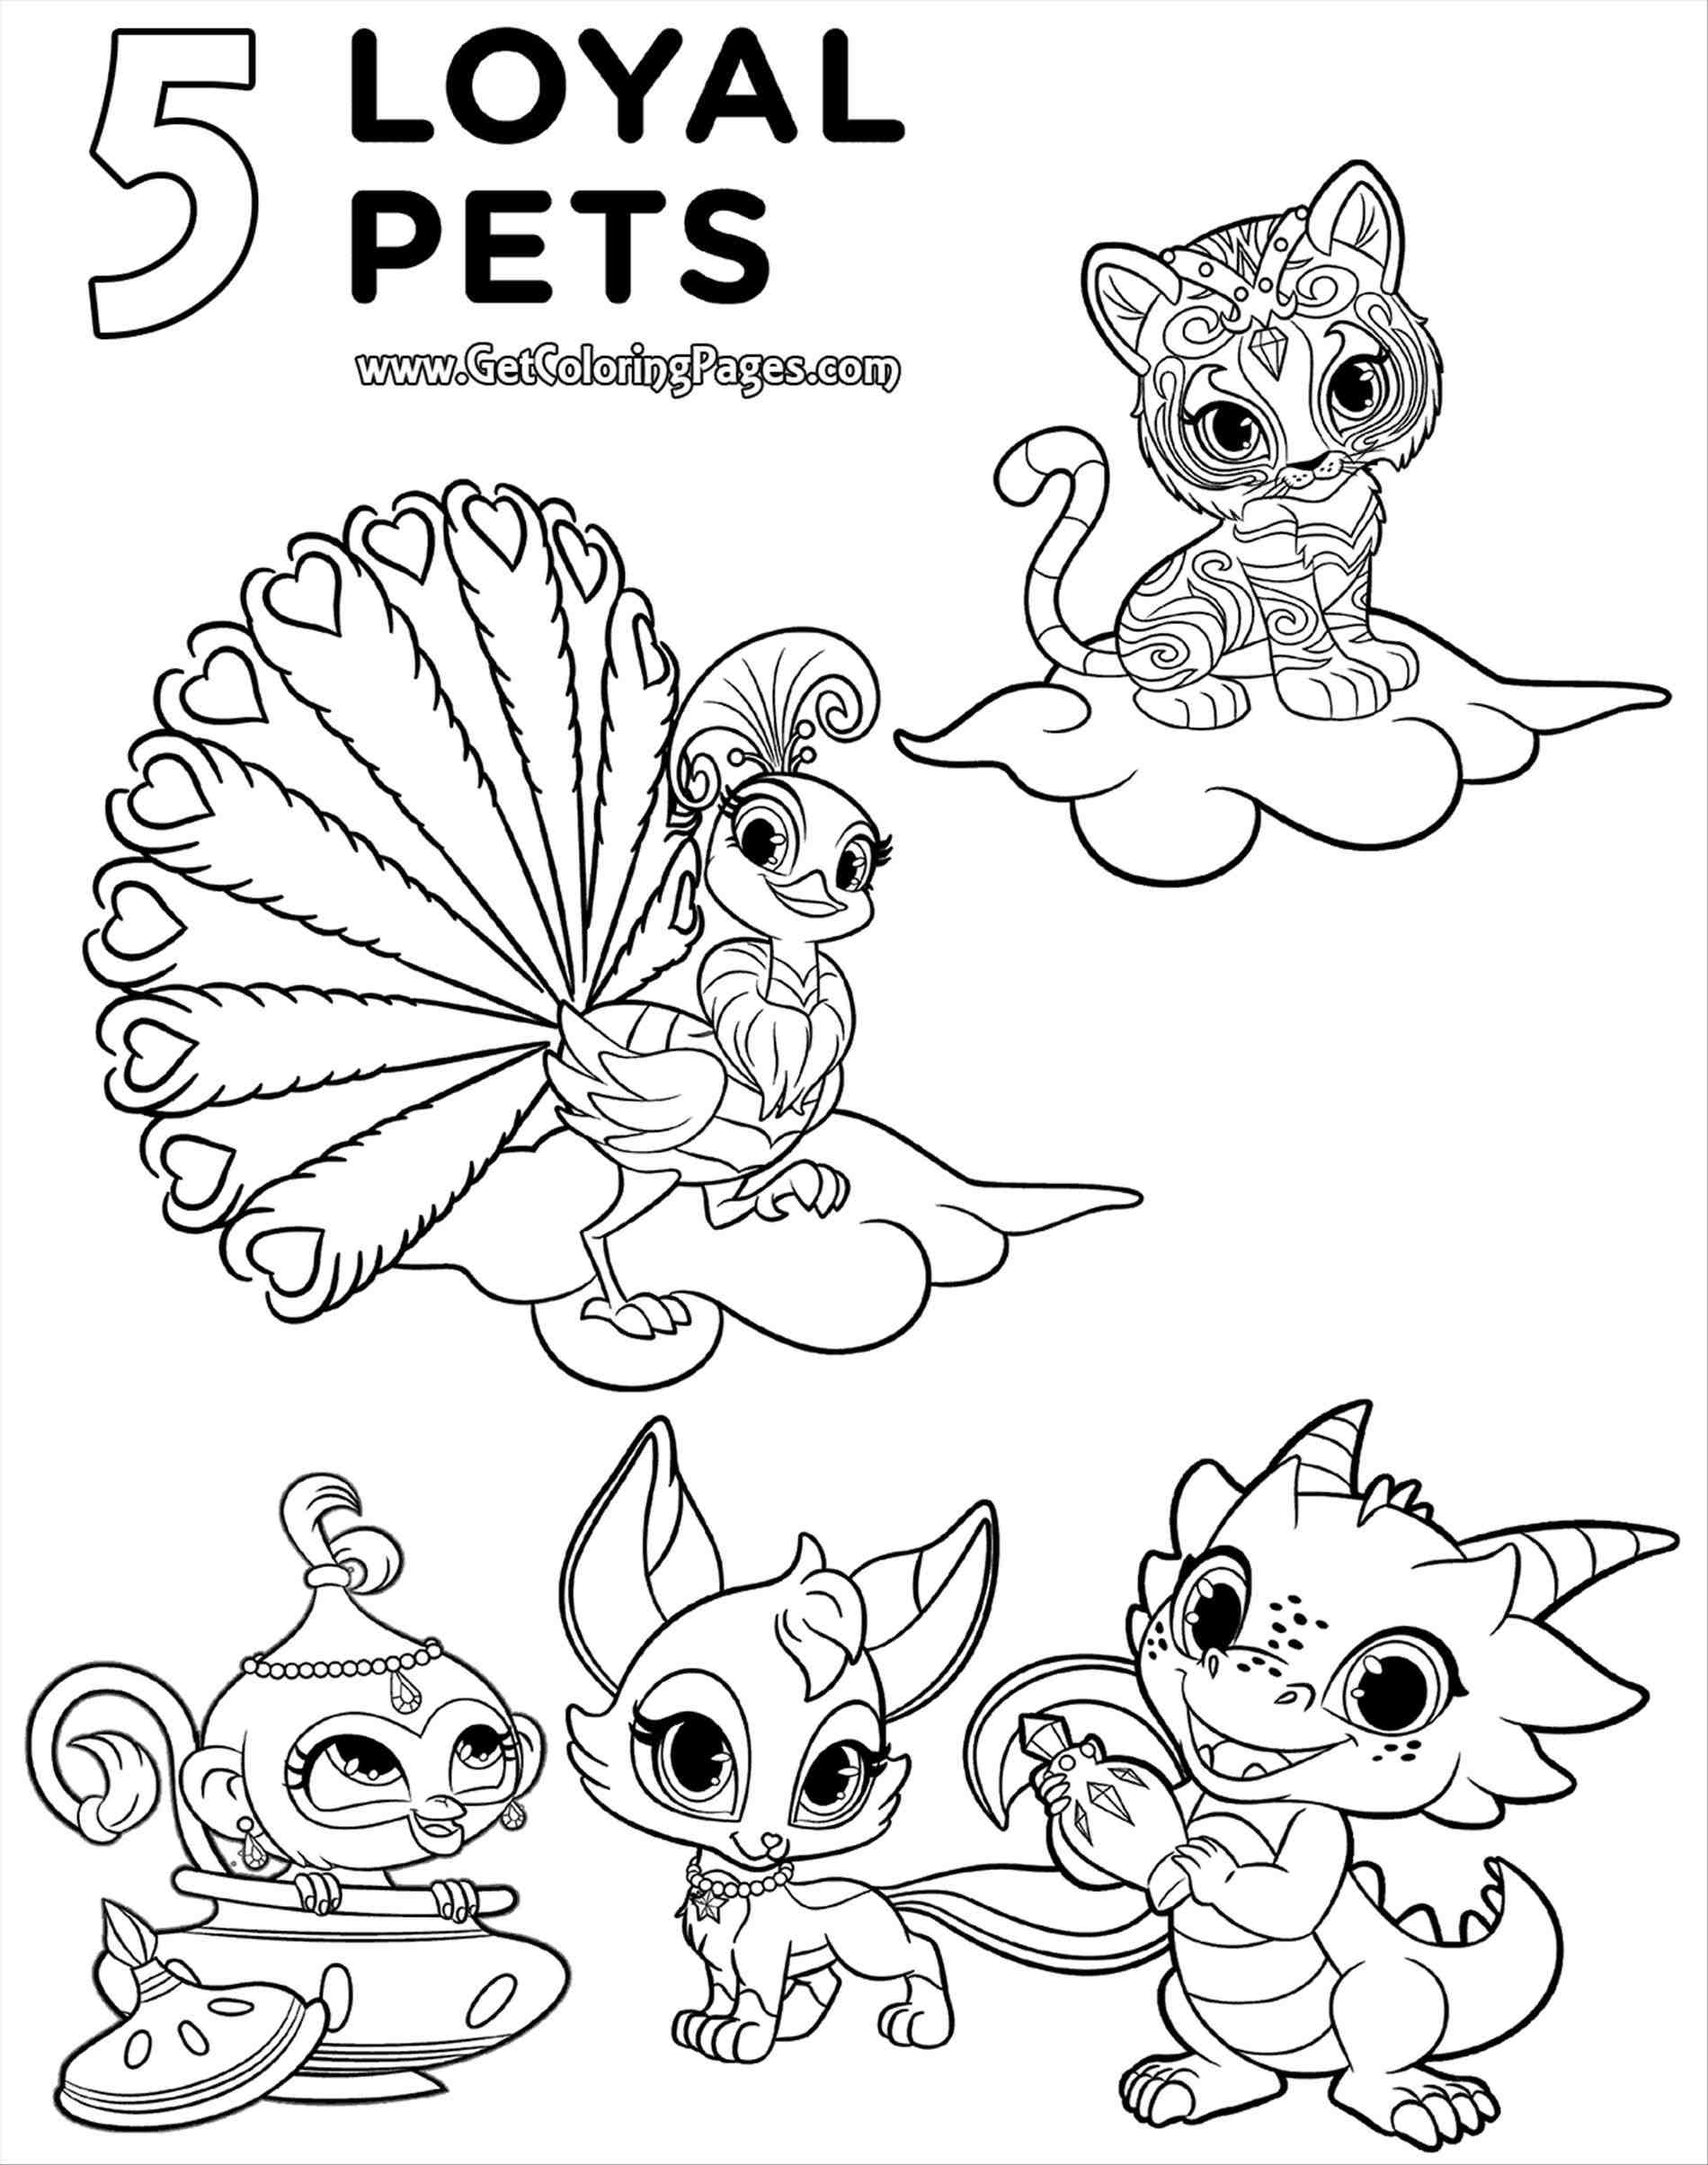 nickelodeon coloring coloring pages for girls nickelodeon coloring pages nickelodeon coloring